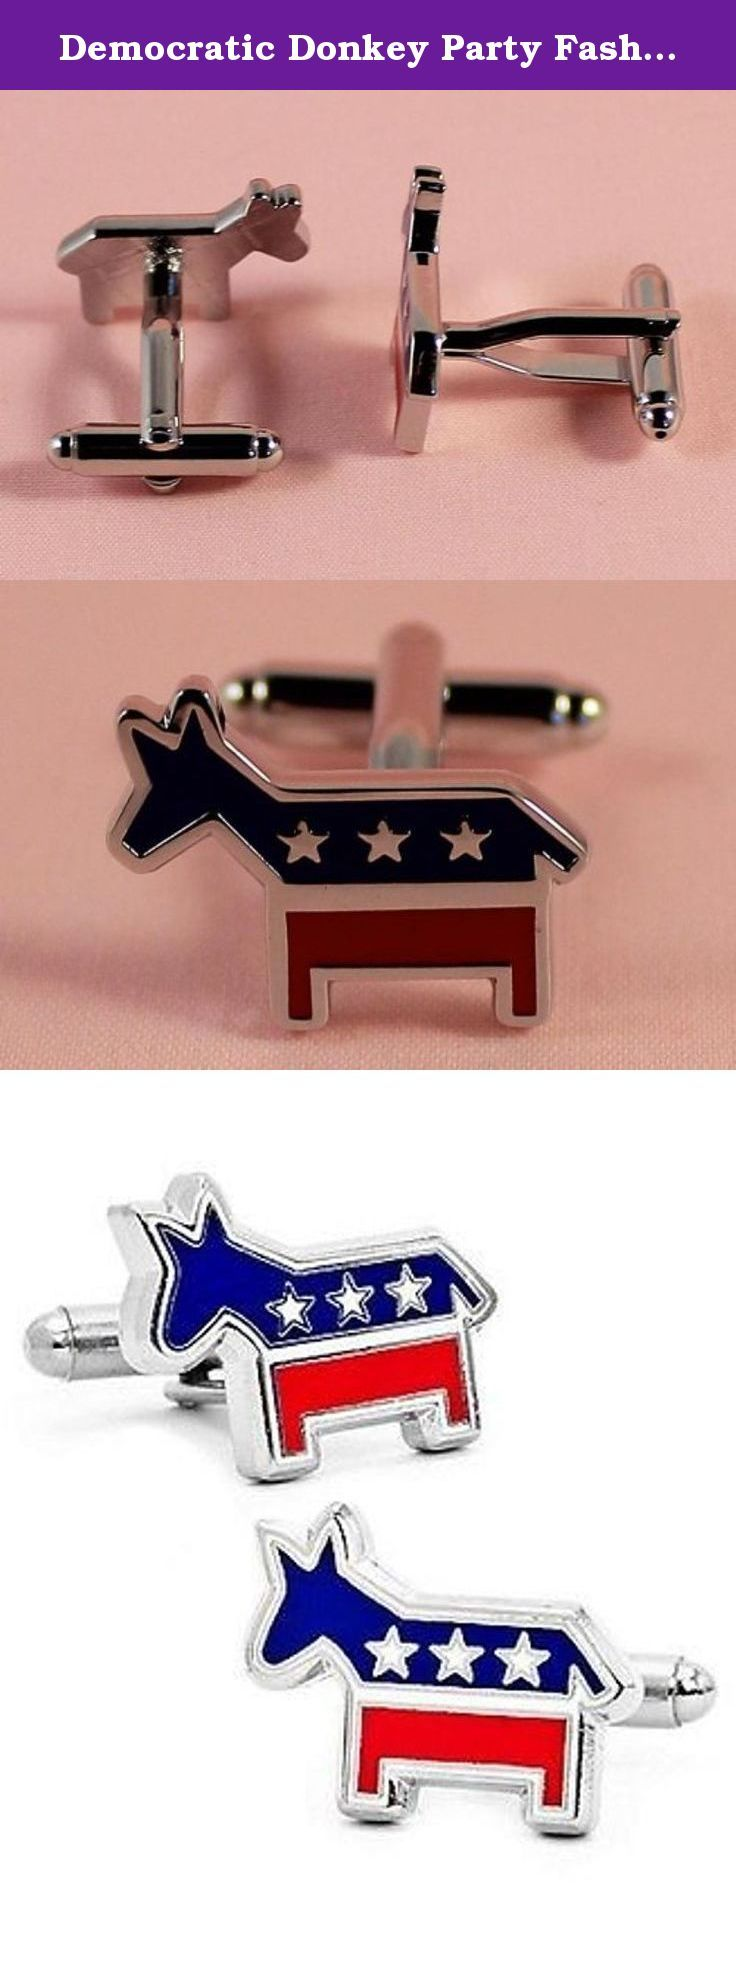 Democratic Donkey Party Fashion Politics Designer Cufflinks. Show off your pride in your Democratic party with these clever donkey political party cufflinks. Made in the USA and featuring the colors of our flag, these are a real treasure. Arrives in a top-quality presentation box. We ship within 24 hours and have a friendly 30-day return policy.